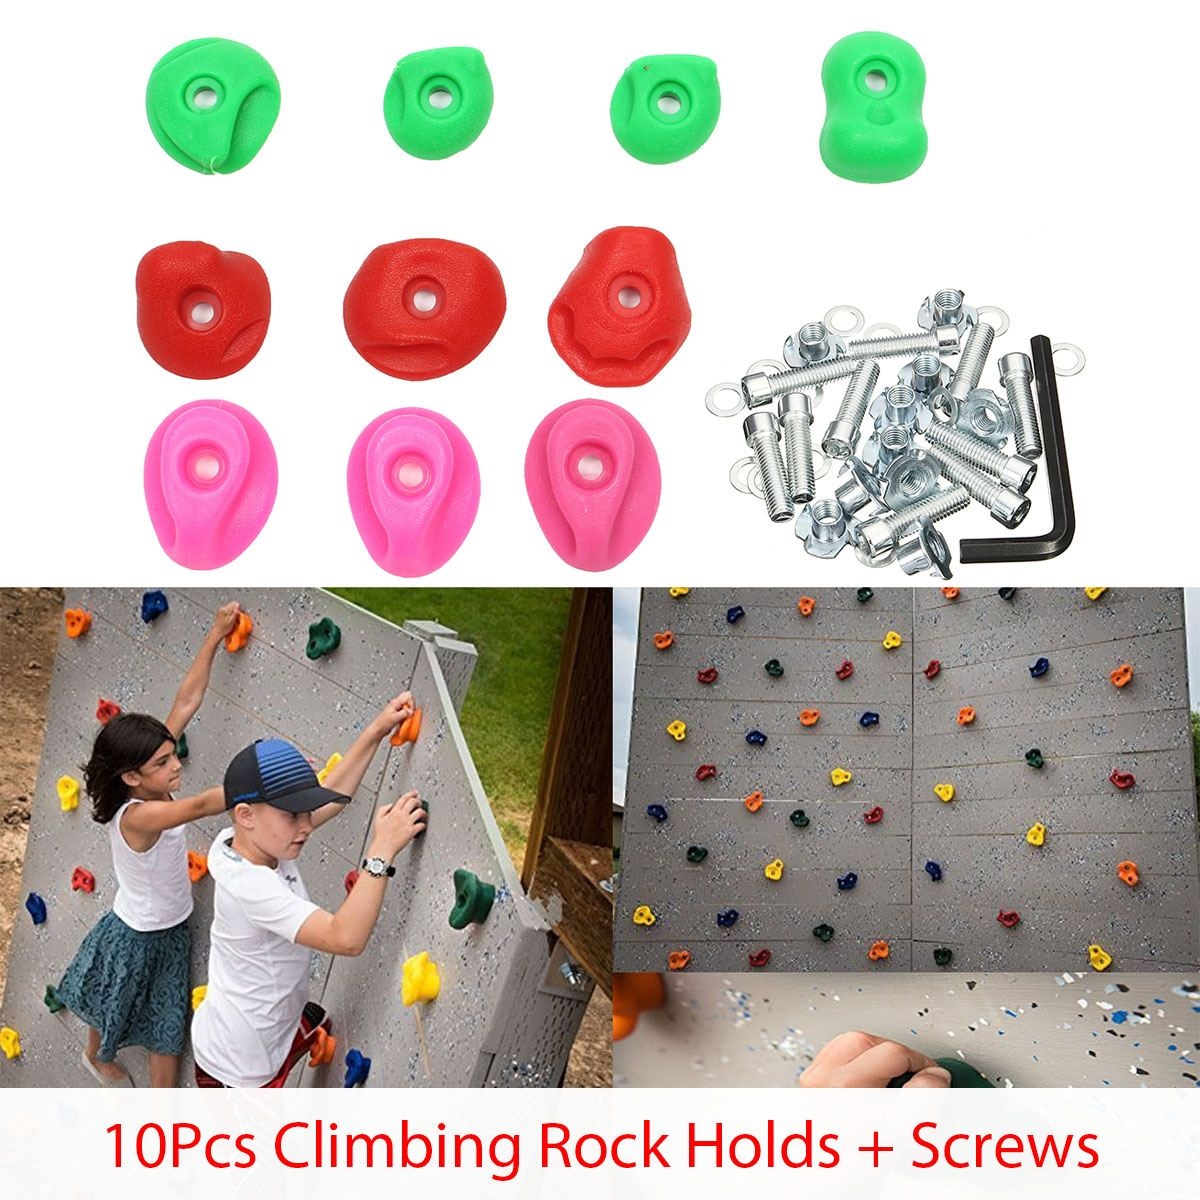 10pcs Plastic Climbing Rock Wall Stones Children Kids Toys Climbing Tool Hand Feet Holds Grip Kits With Bolts Outdoor Indoor Toy10pcs Plastic Climbing Rock Wall Stones Children Kids Toys Climbing Tool Hand Feet Holds Grip Kits With Bolts Outdoor Indoor Toy